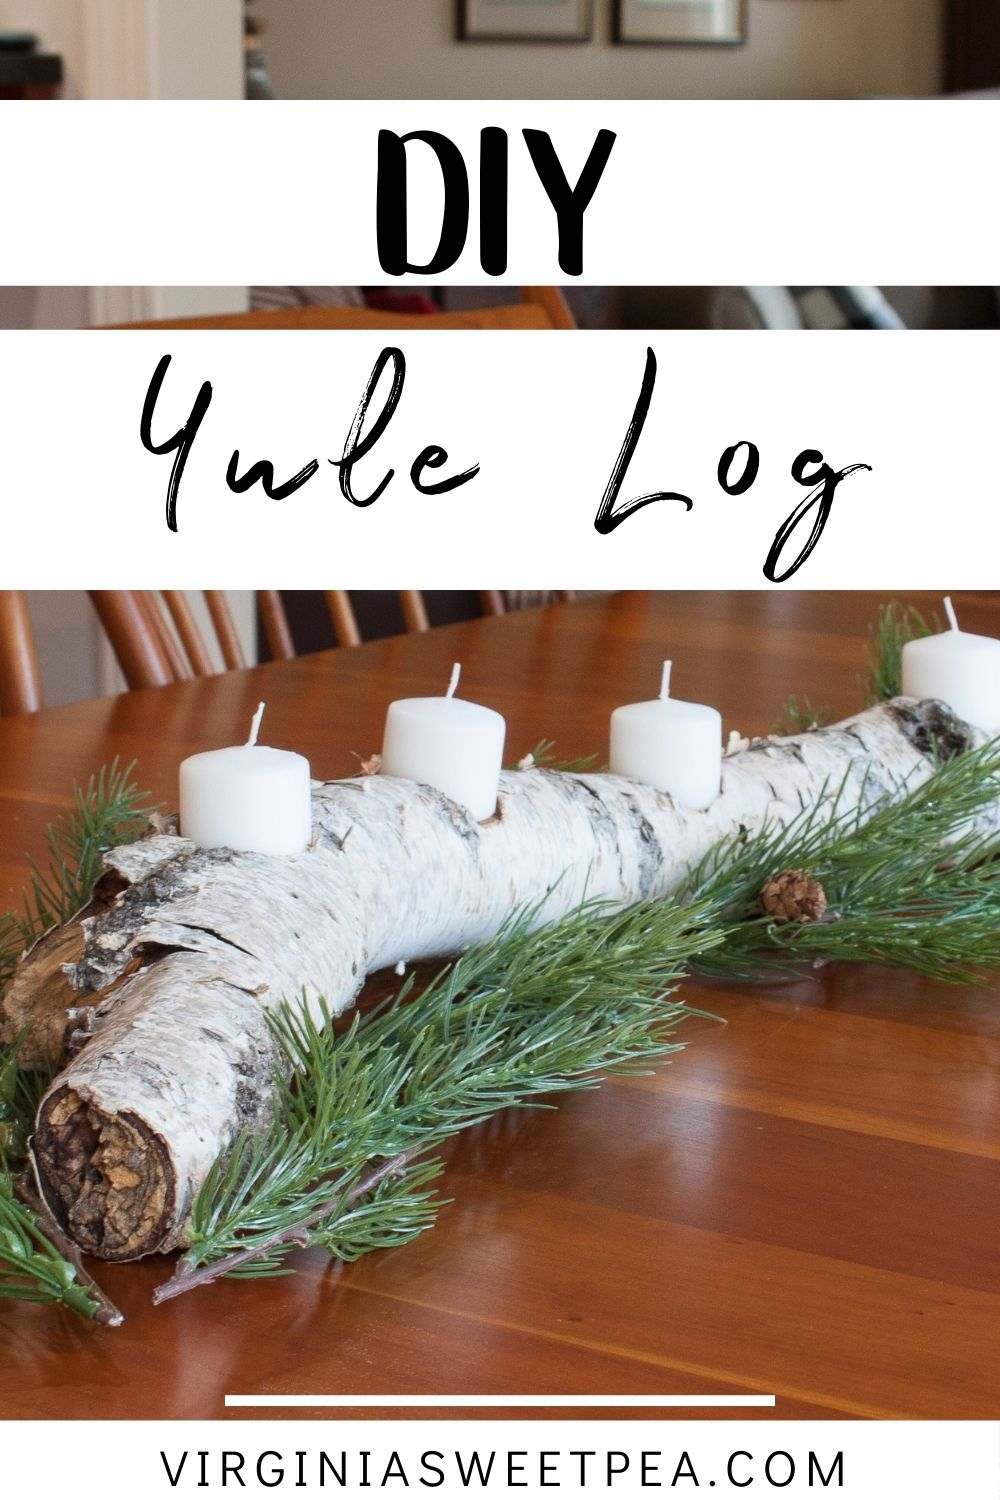 DIY Yule Log - Learn how to make a DIY Yule Log for your home with this step-by-step tutorial. Light the candles in the evening to up the cozy factor in your home for long and dark winter nights. #yulelog #diyyulelog #woodworking via @spaula